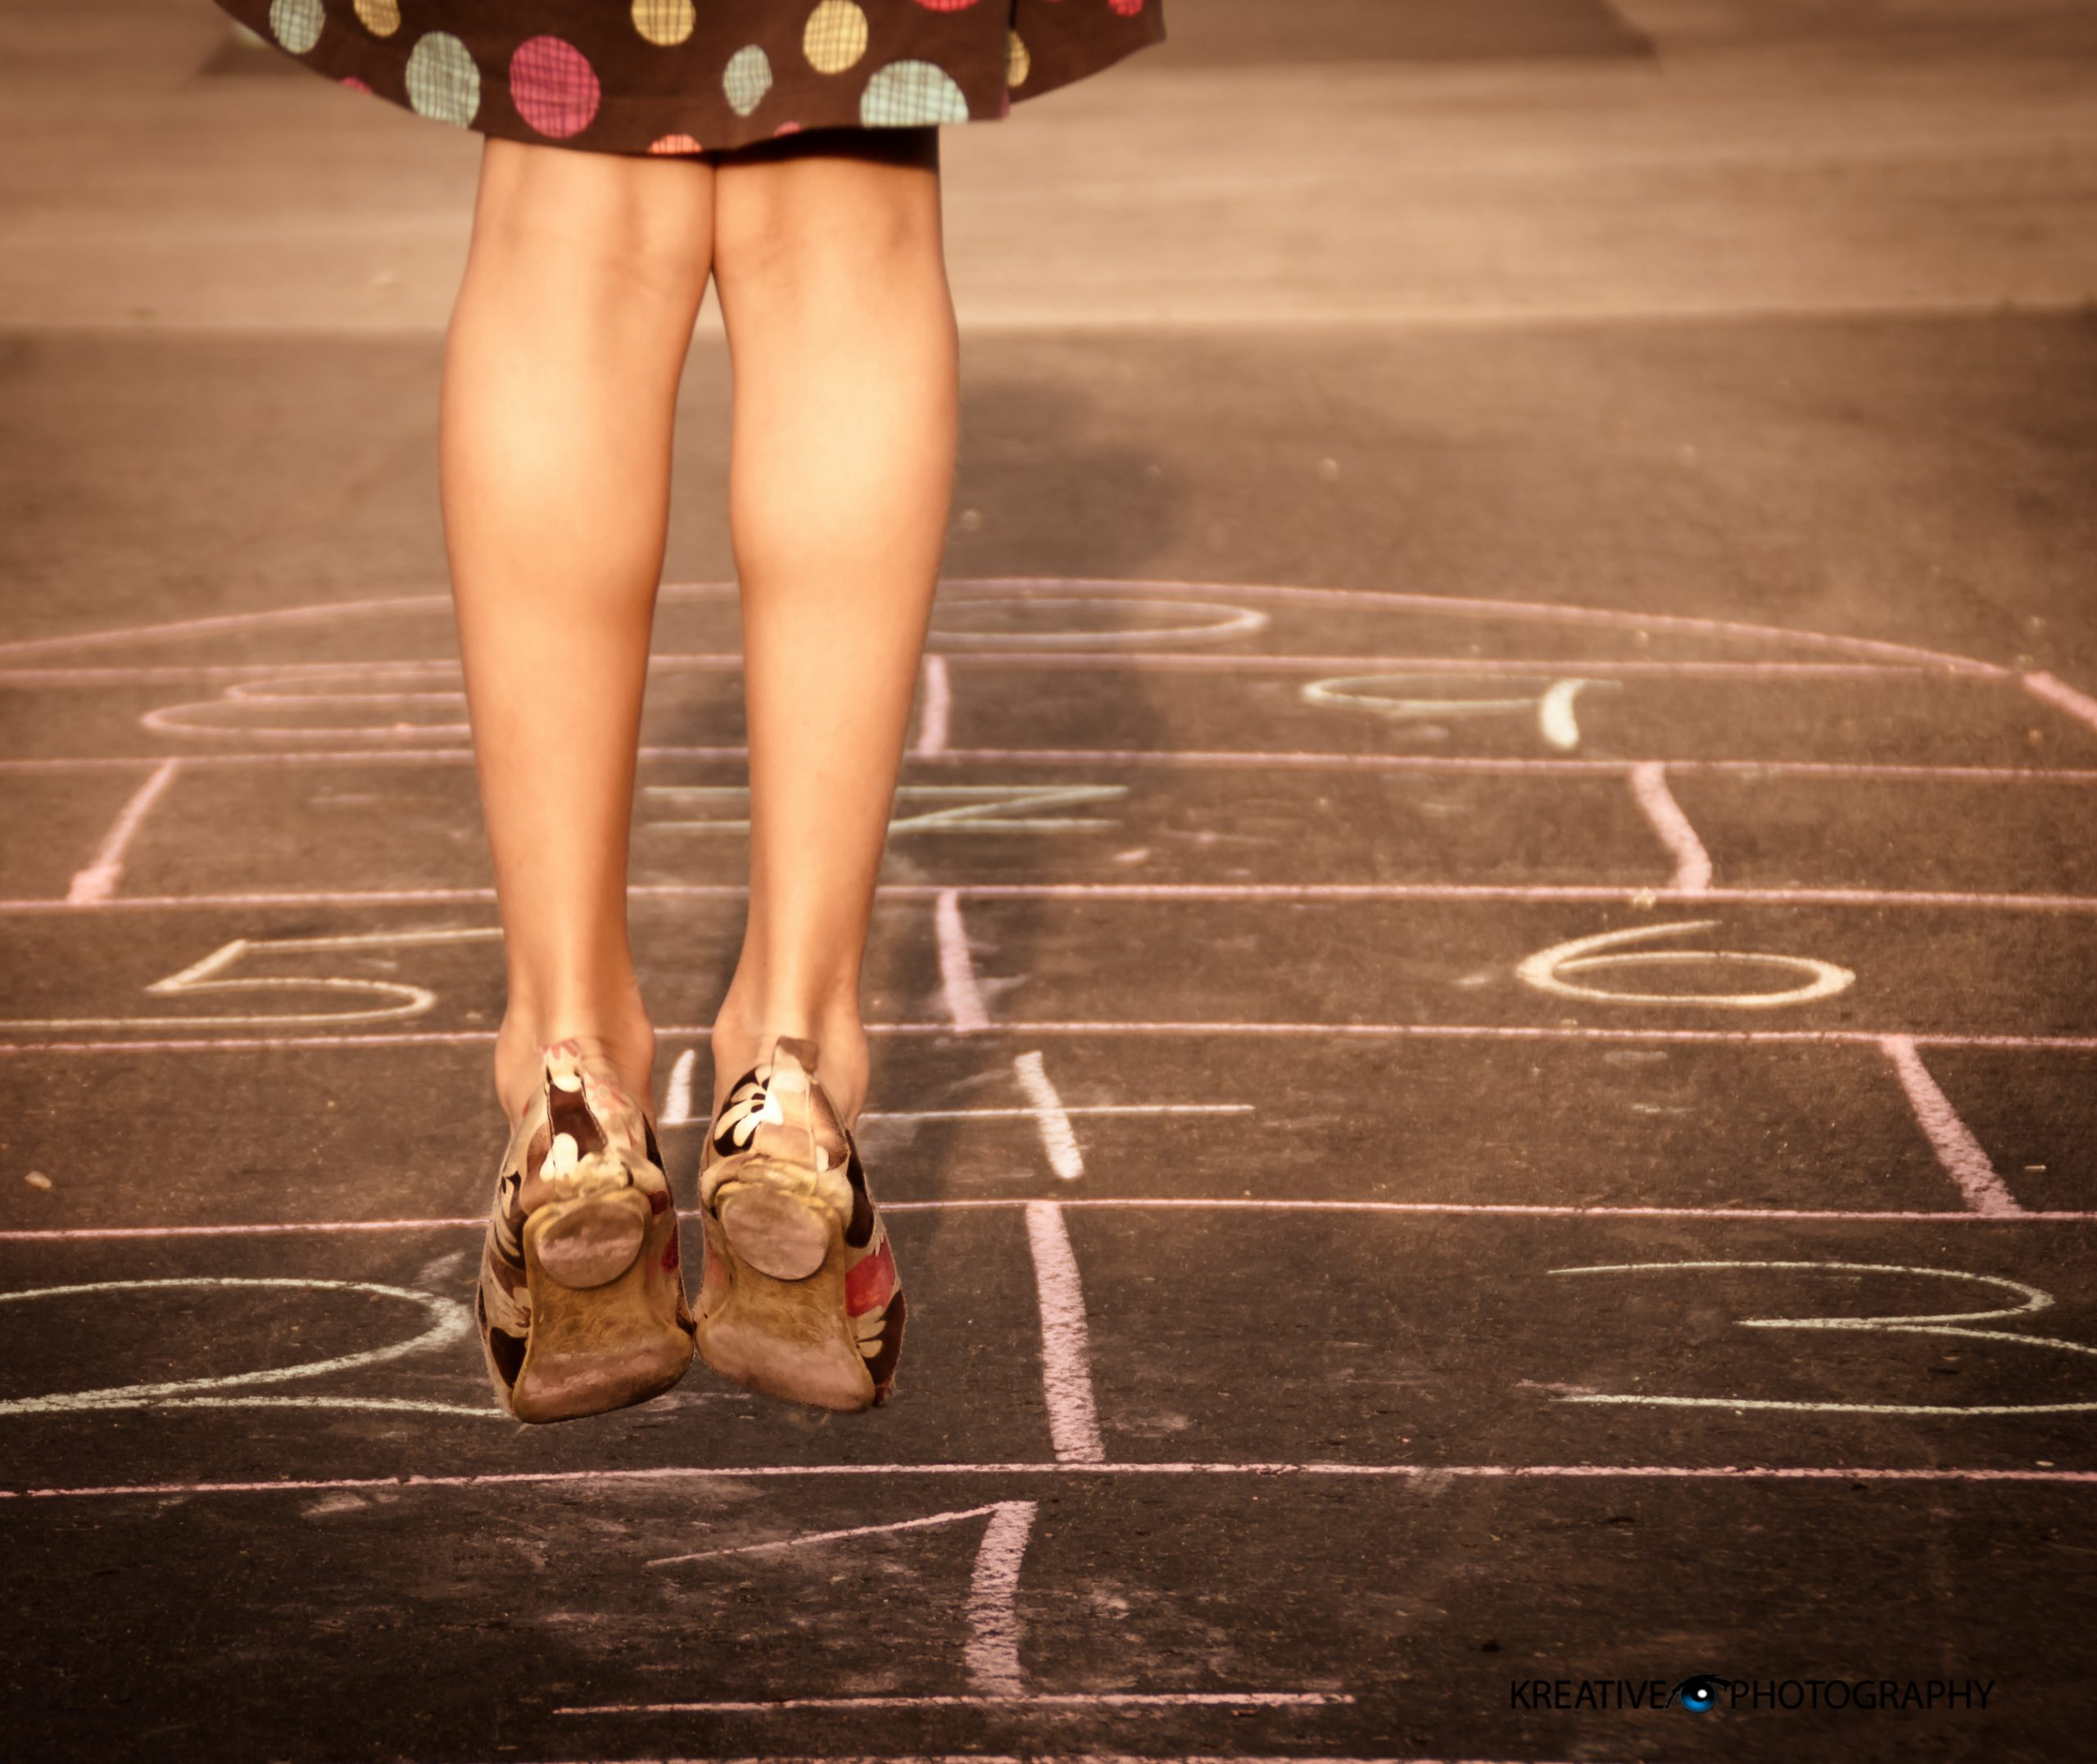 Rayuela, playing with the novel. A girl playing hopscotch